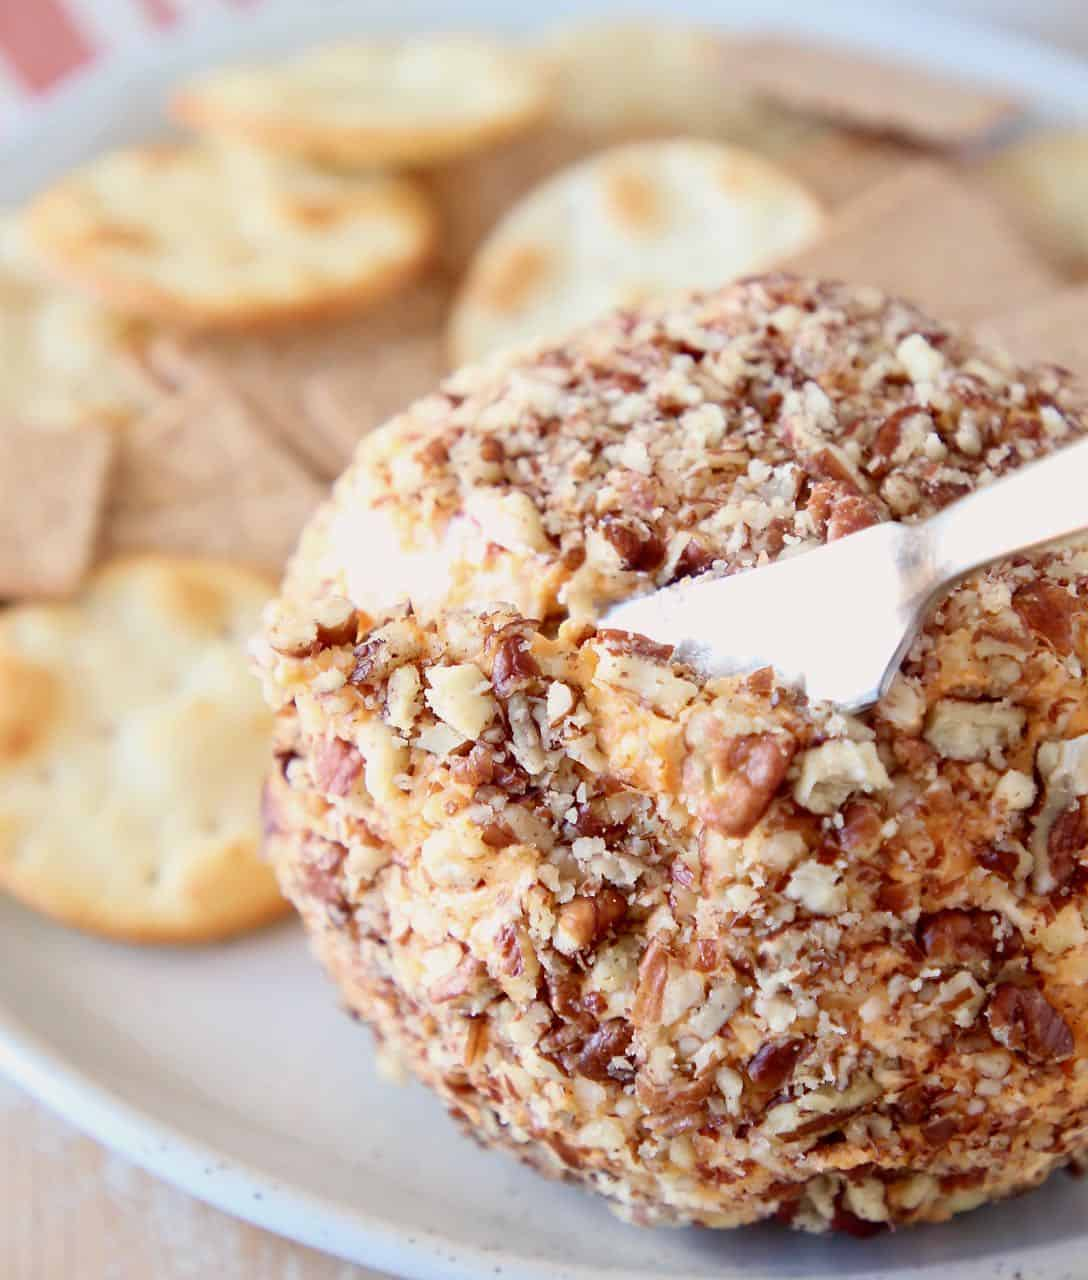 Buffalo cream cheese ball being sliced into with cheese knife